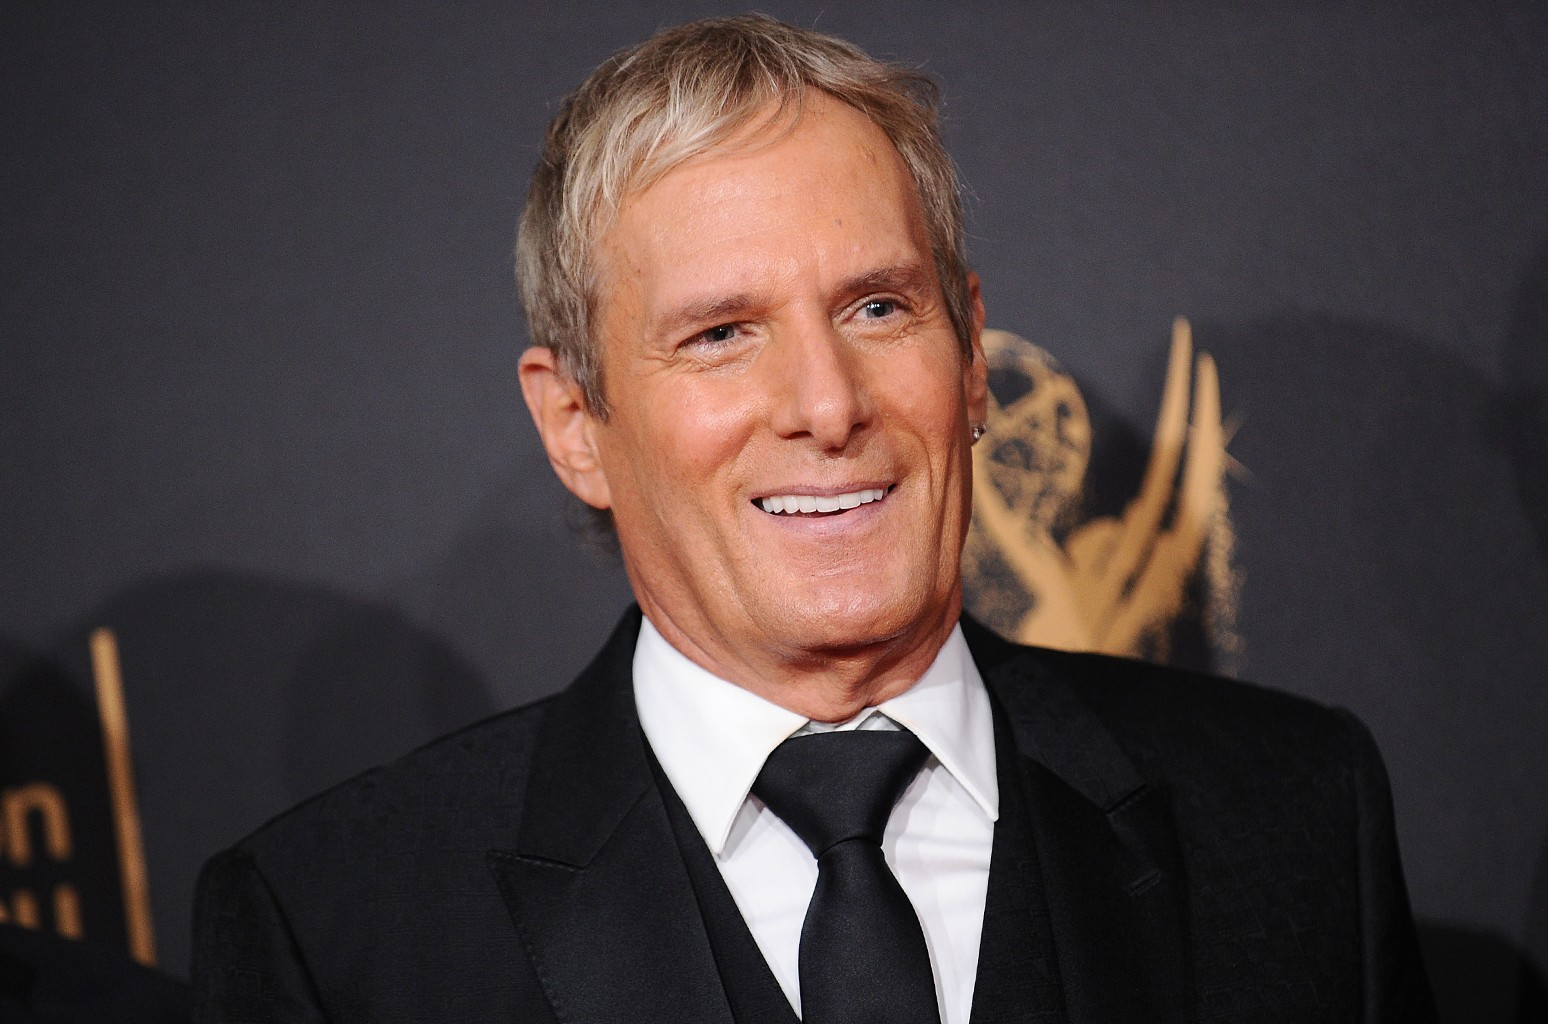 Famed love balladeer Michael Bolton has updated his Hot 100 No. 1 hit,